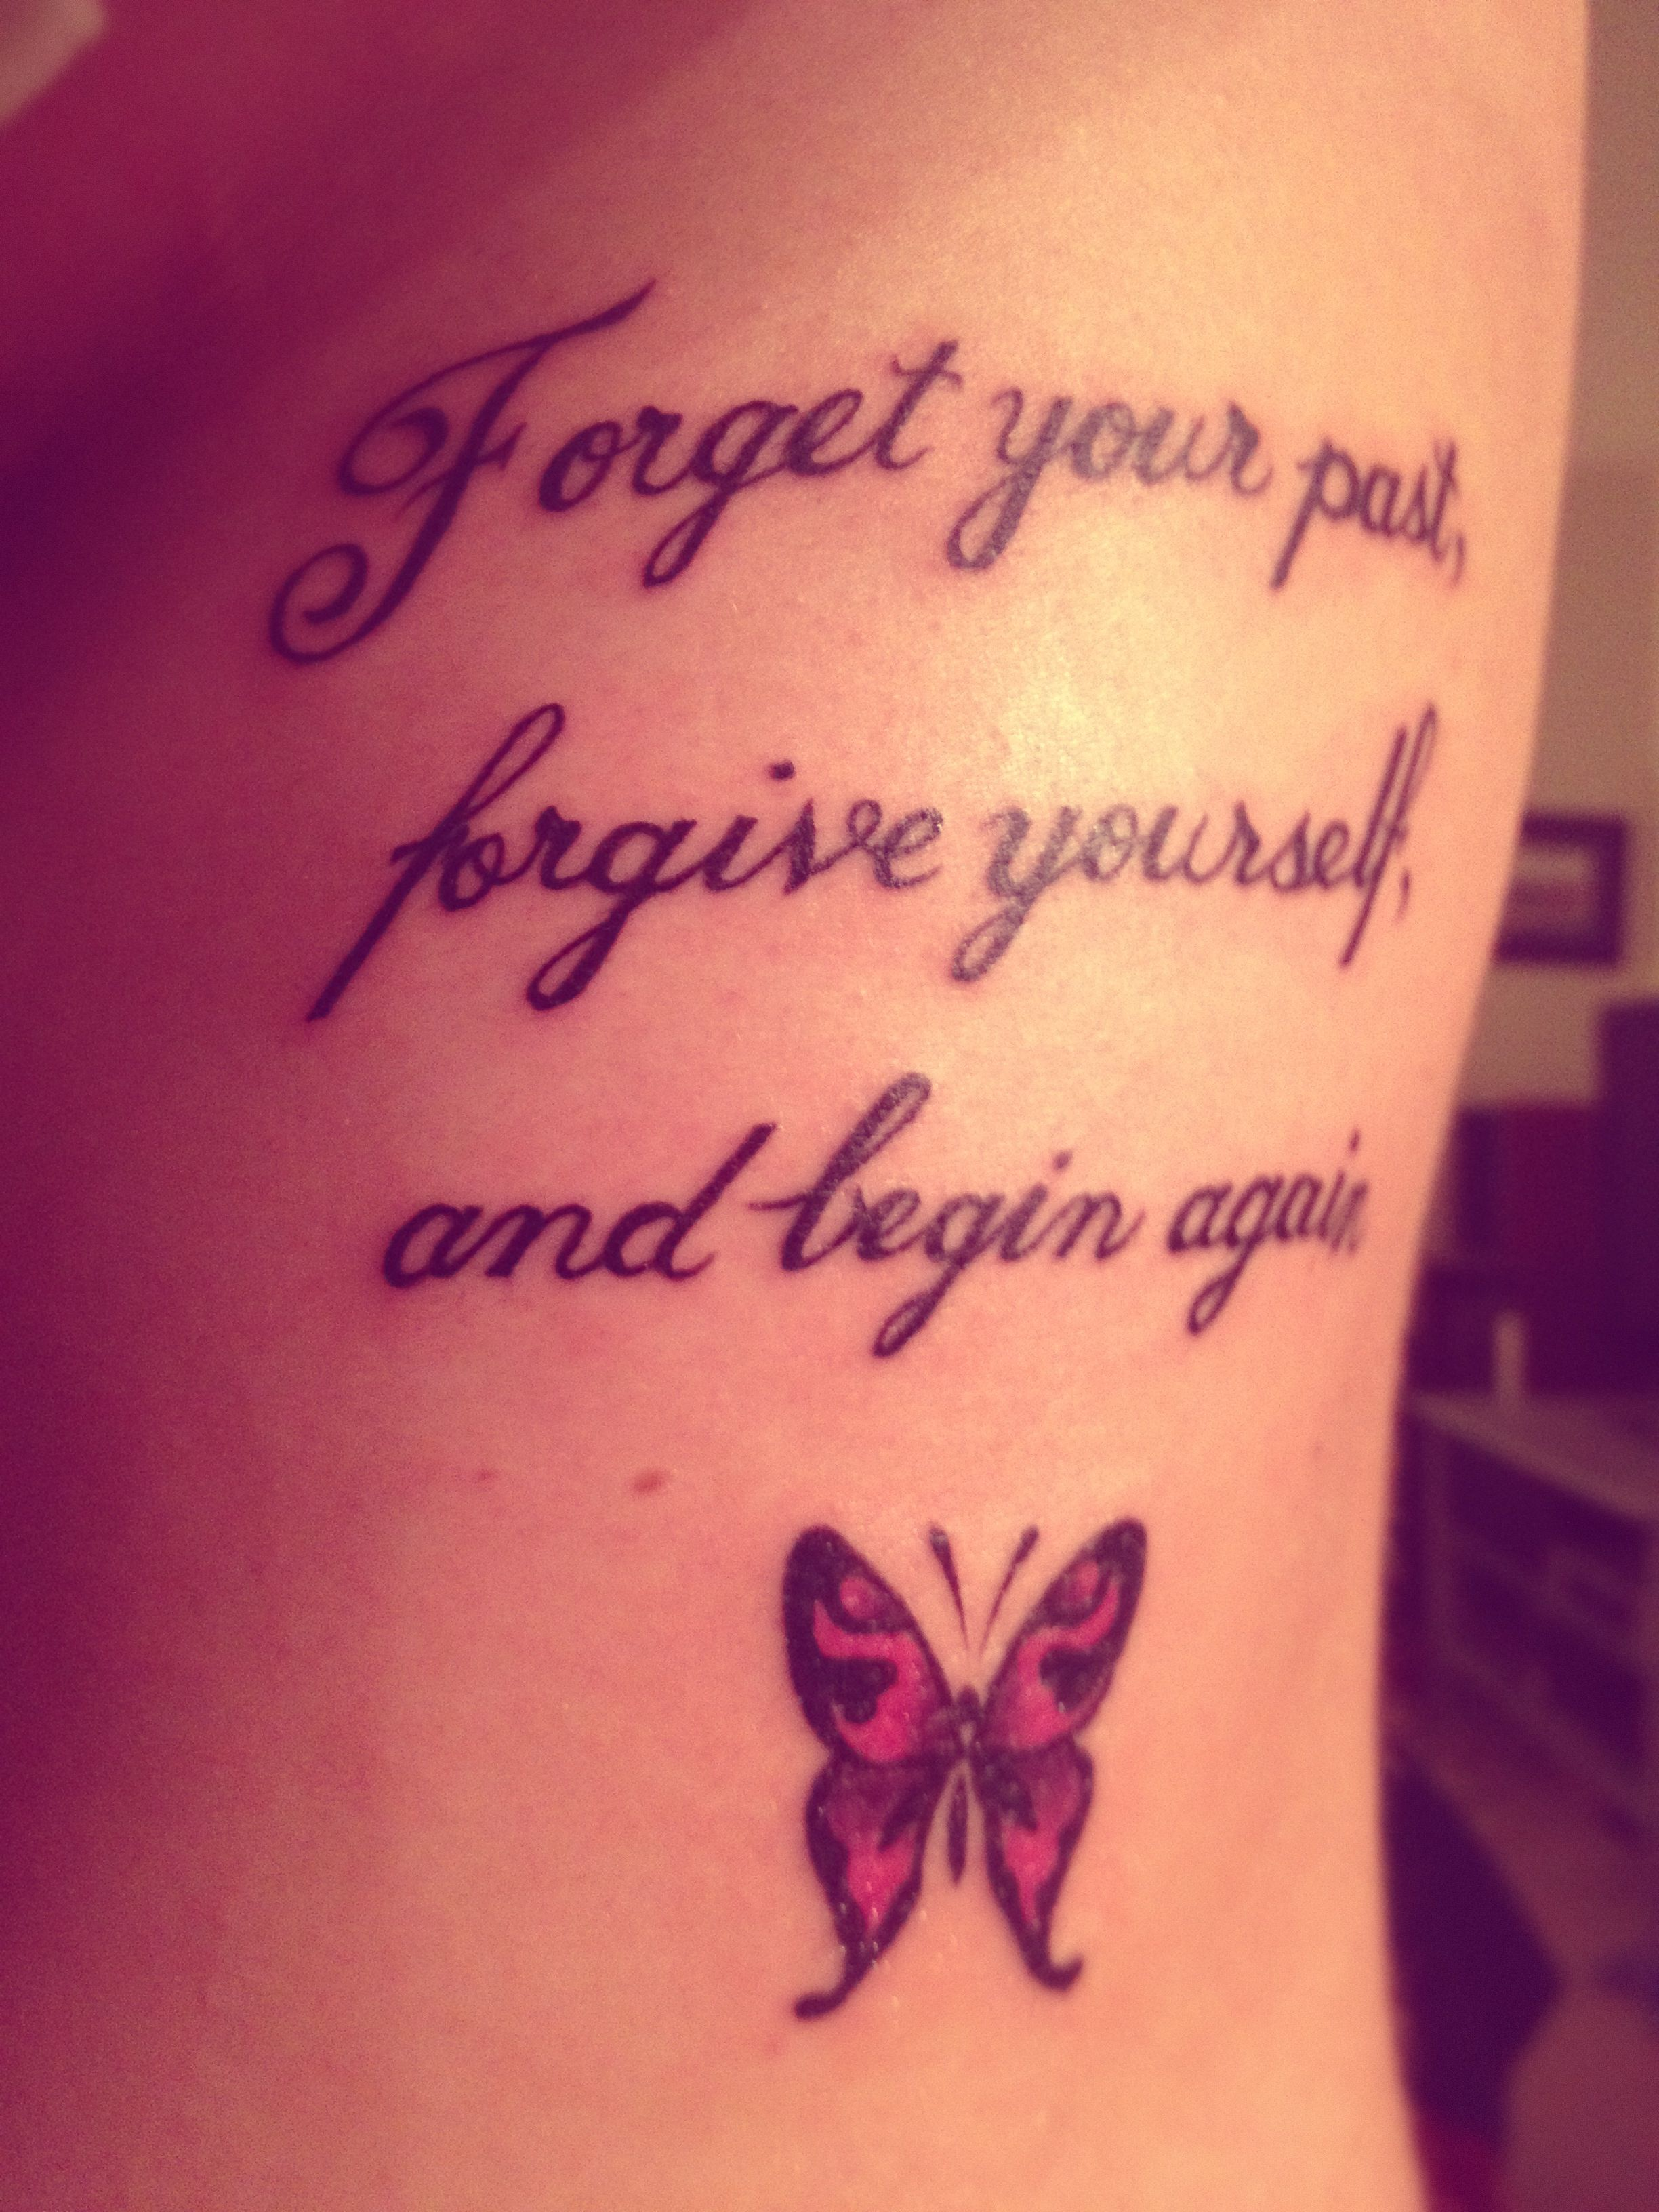 Nice Quote Tattoo With Butterfly Tattoos Tattoos Ideas And Designs